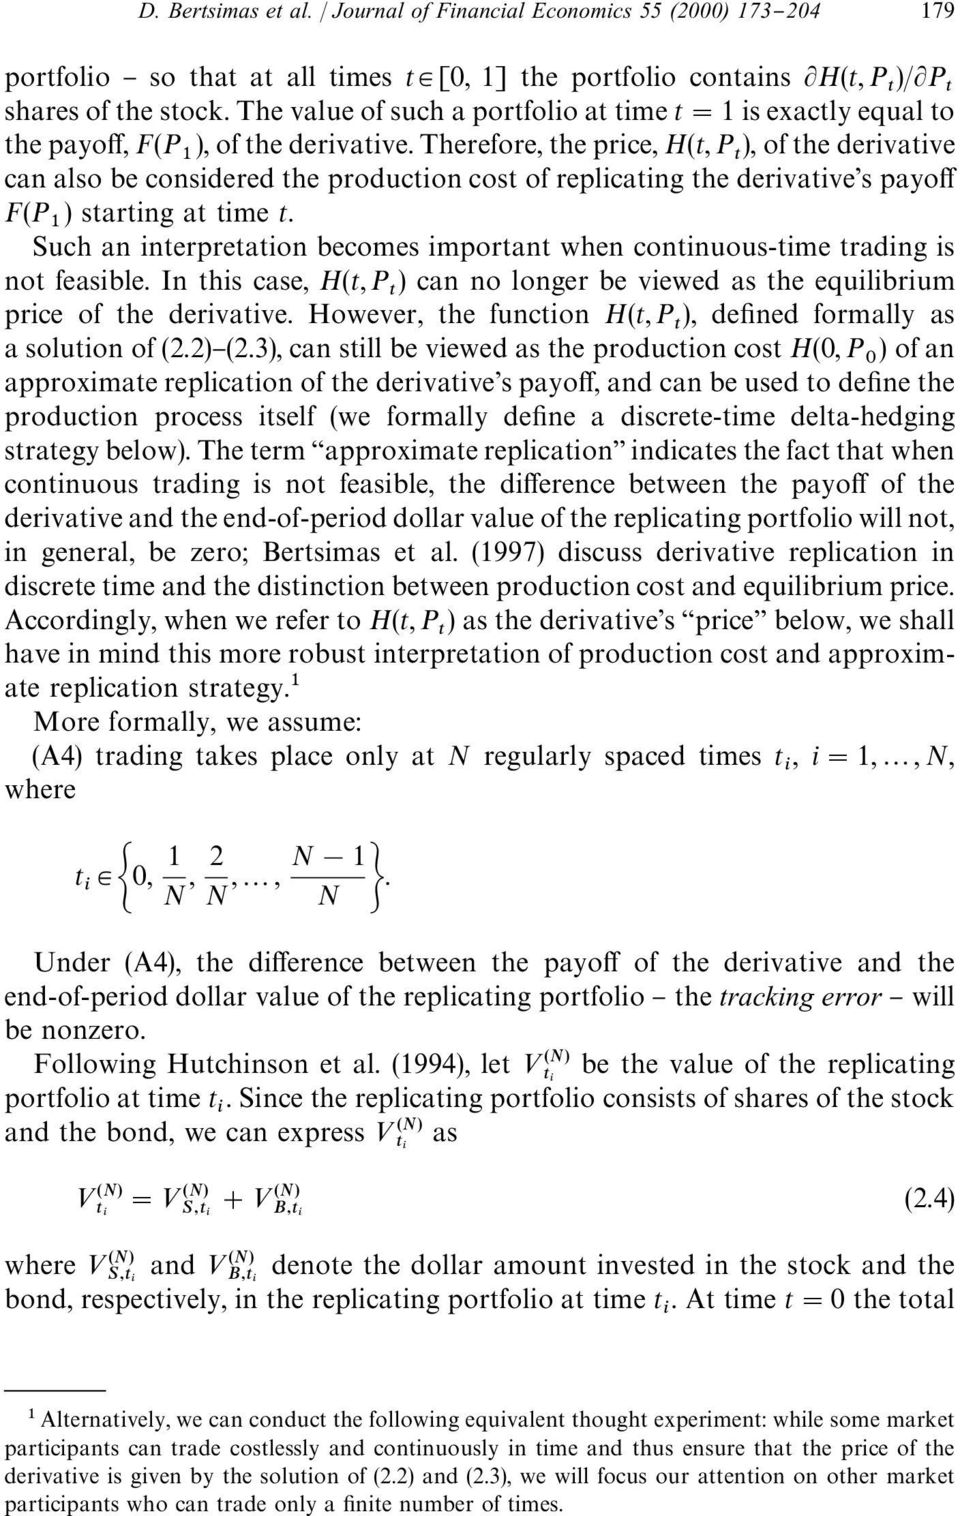 Therefore, the price, H(t, P ), of the derivative can also be considered the production cost of replicating the derivative's payo! F(P ) starting at time t.